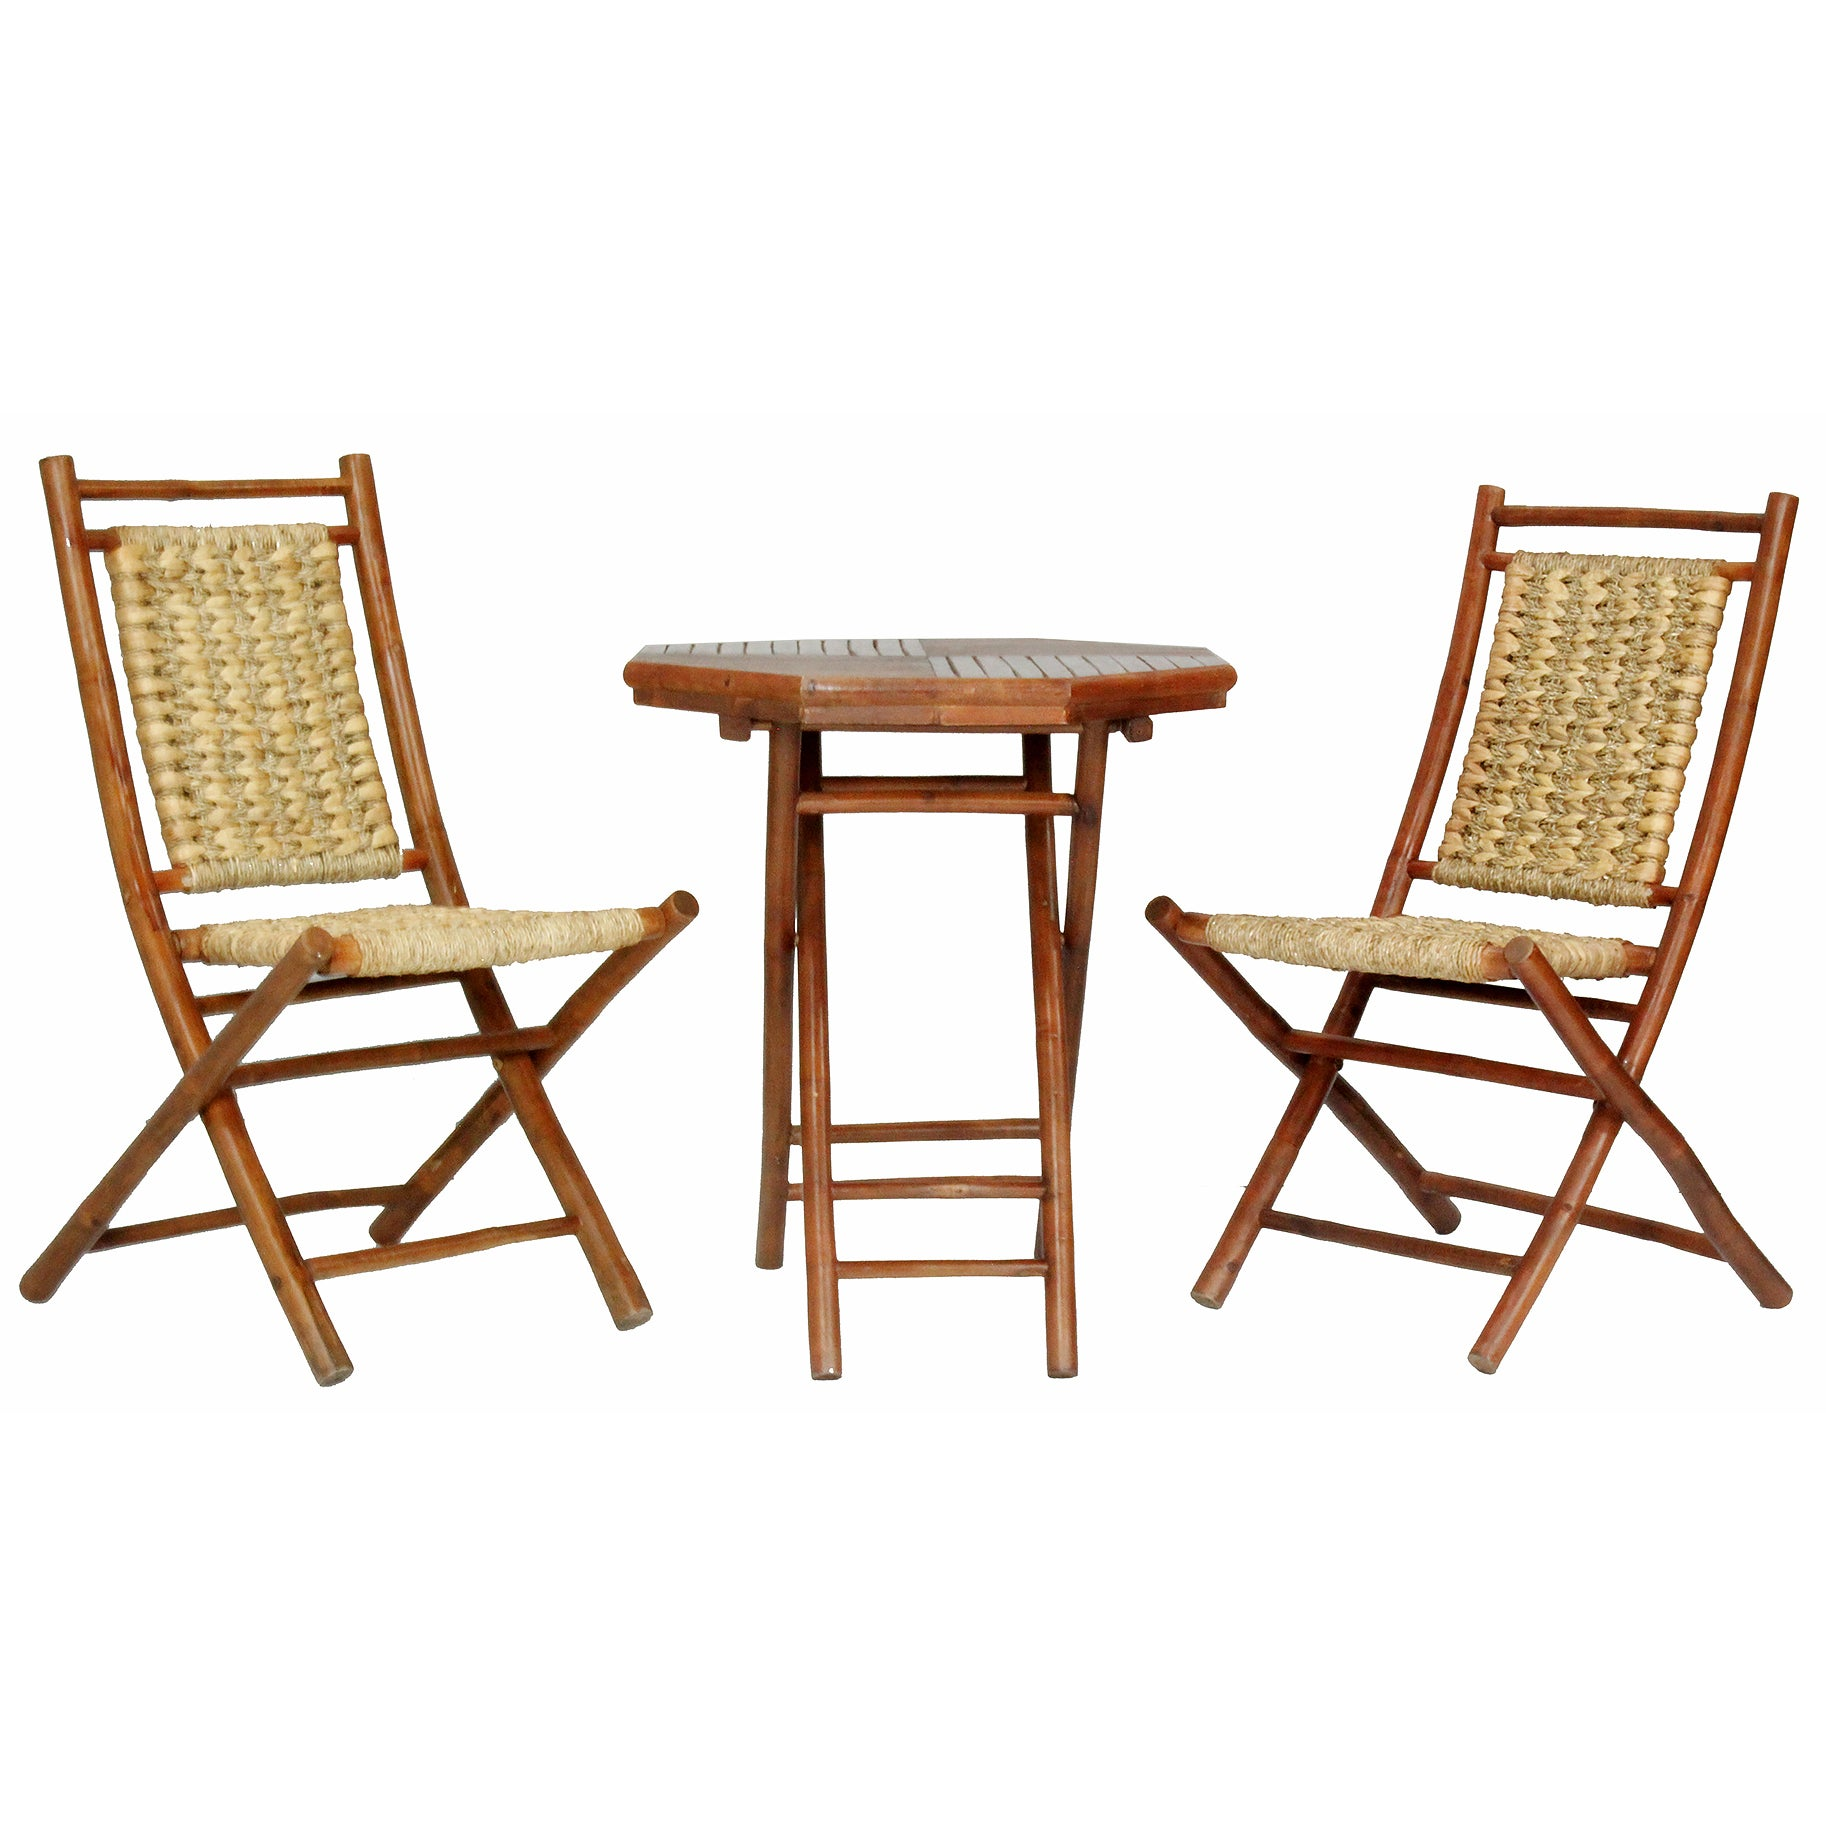 Kauai 3-piece Indoor/Outdoor Bistro Set | eBay